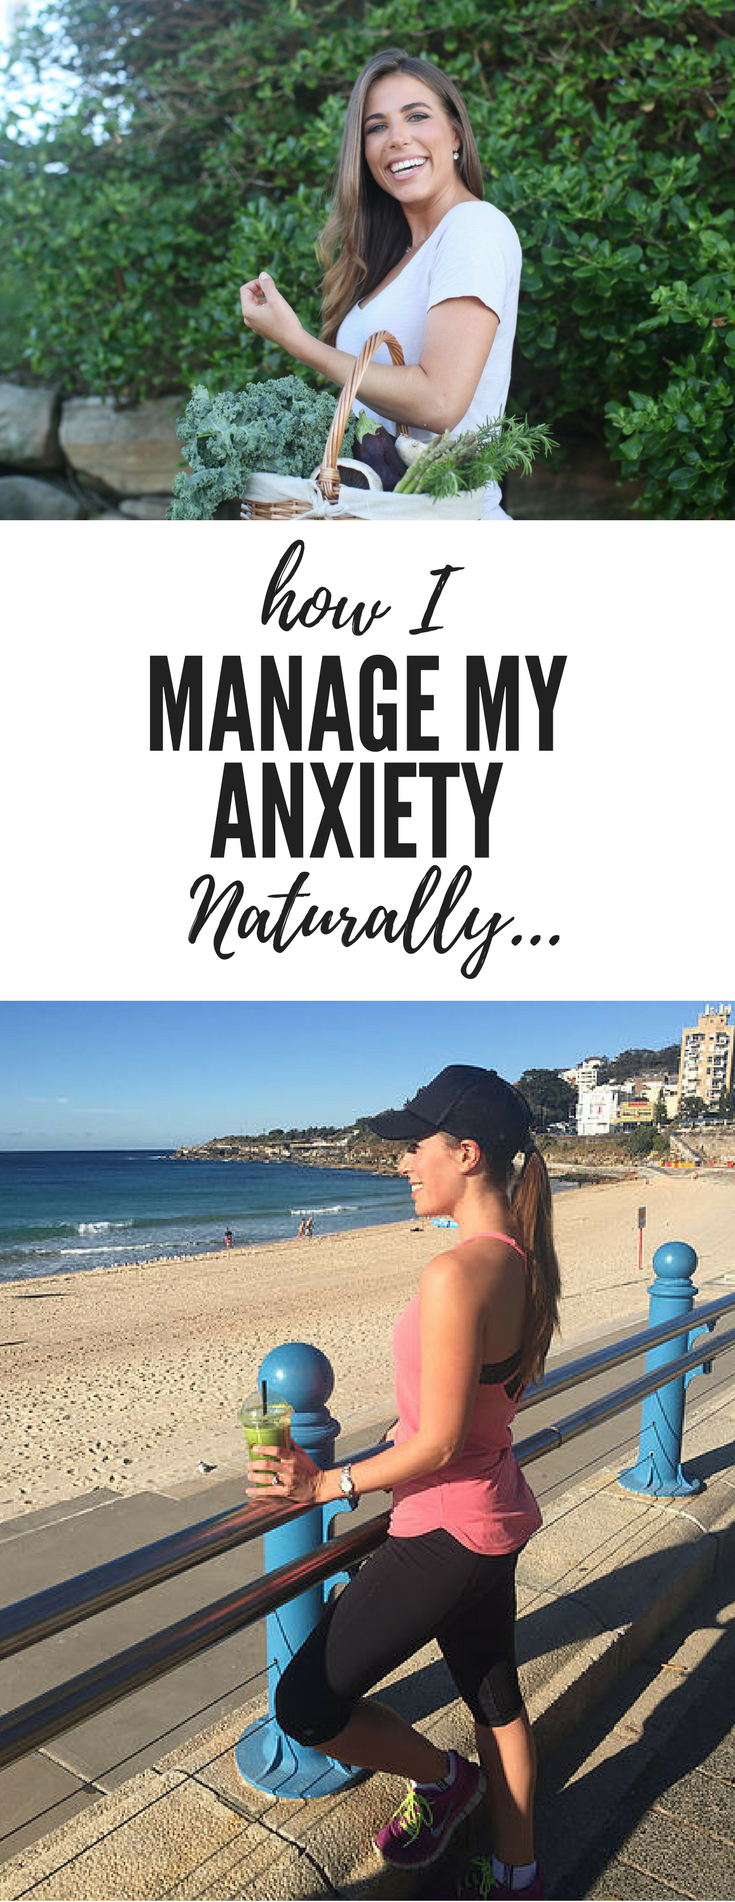 How I manage treat my anxiety naturally